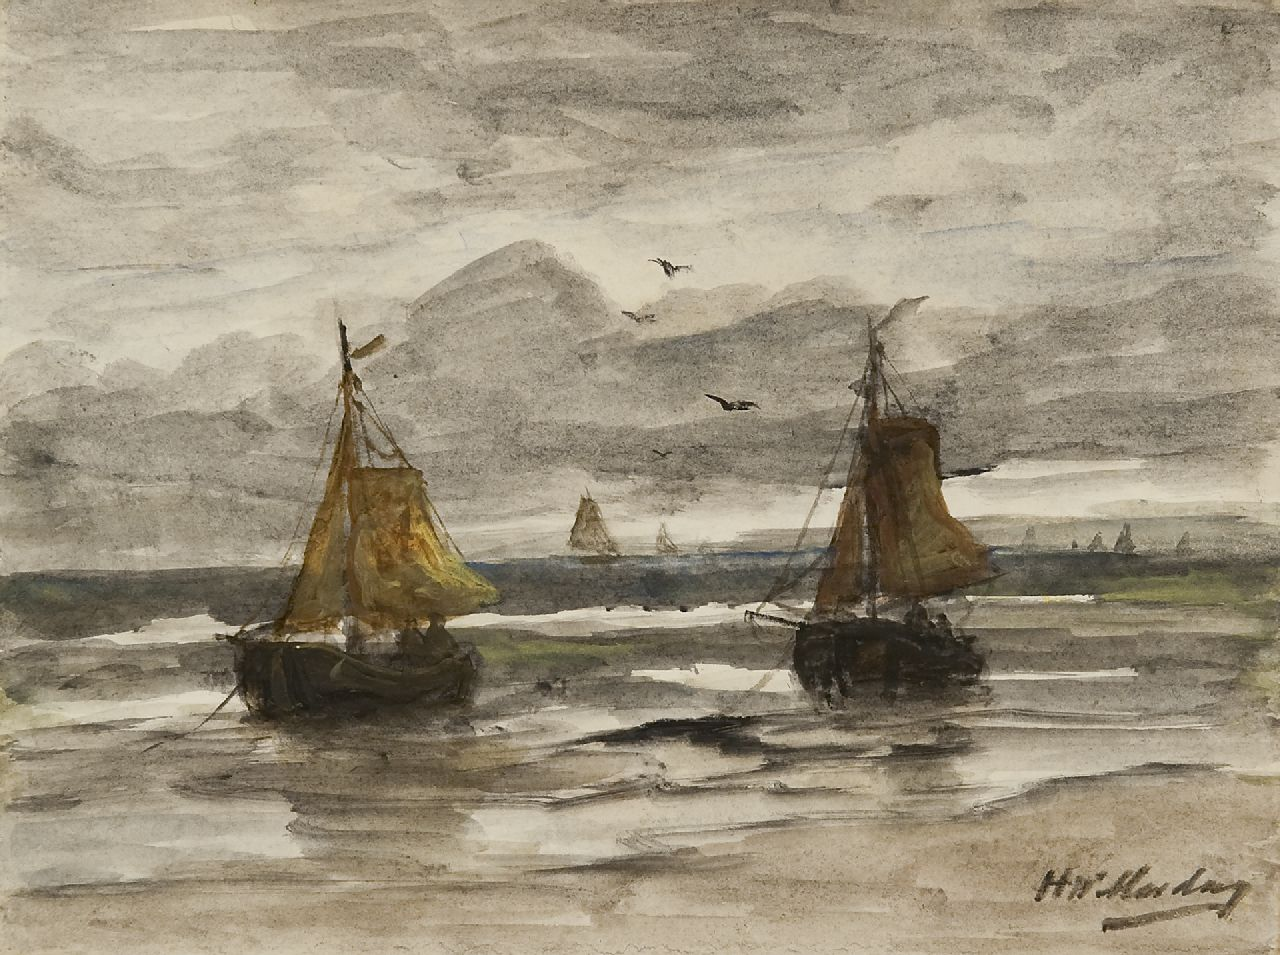 Mesdag H.W.  | Hendrik Willem Mesdag, Two fishing barges at anchor in the surf, watercolour on paper 18.1 x 24.1 cm, signed l.r.